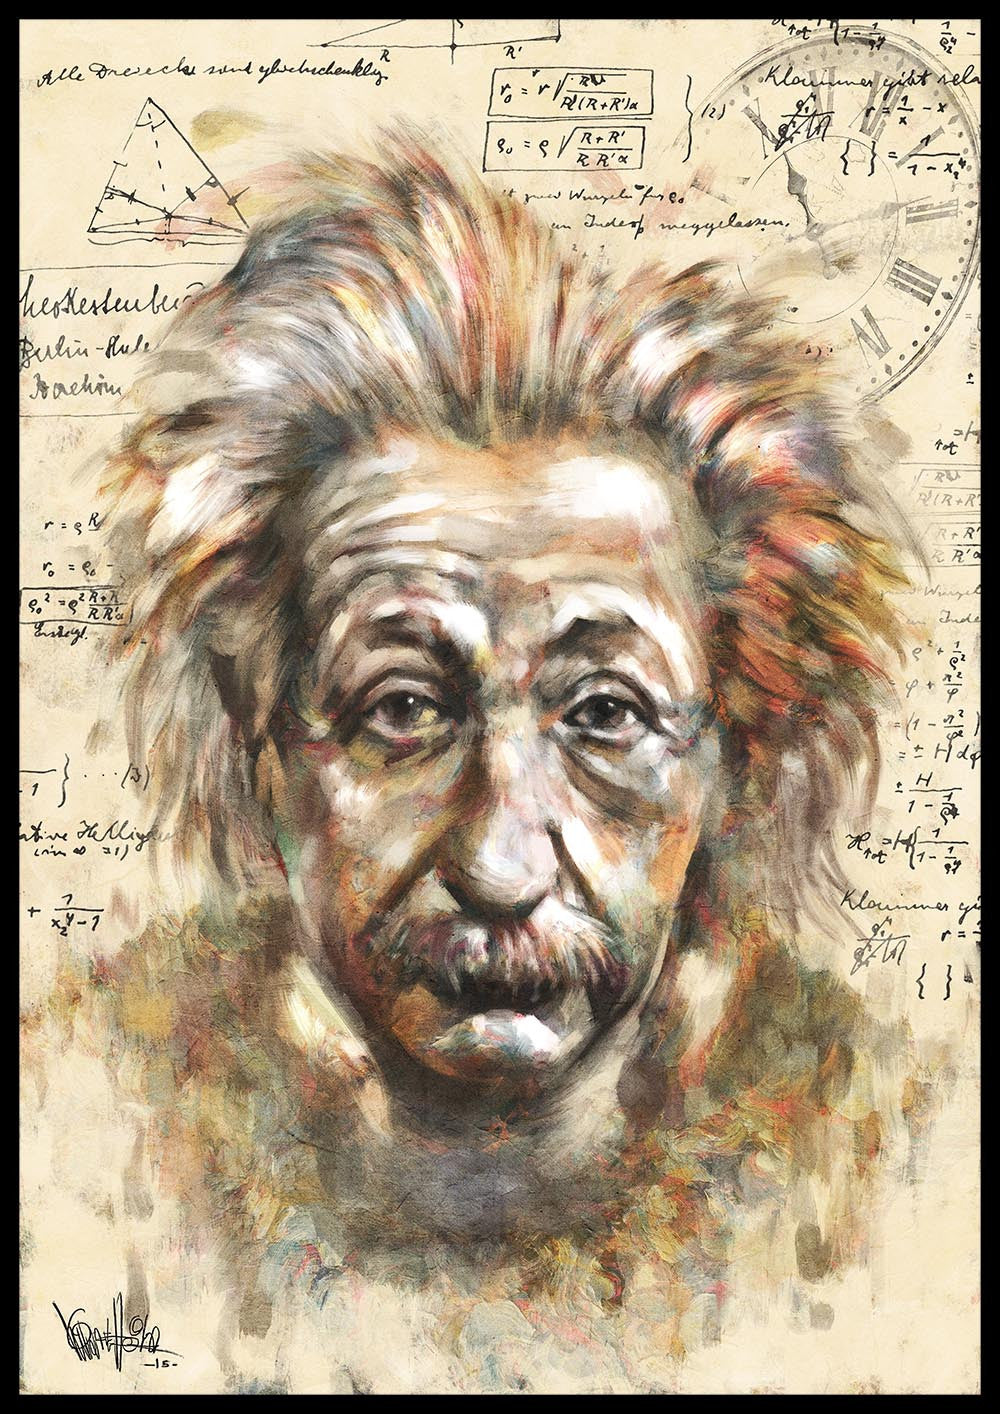 Albert Einstein Tribute #1